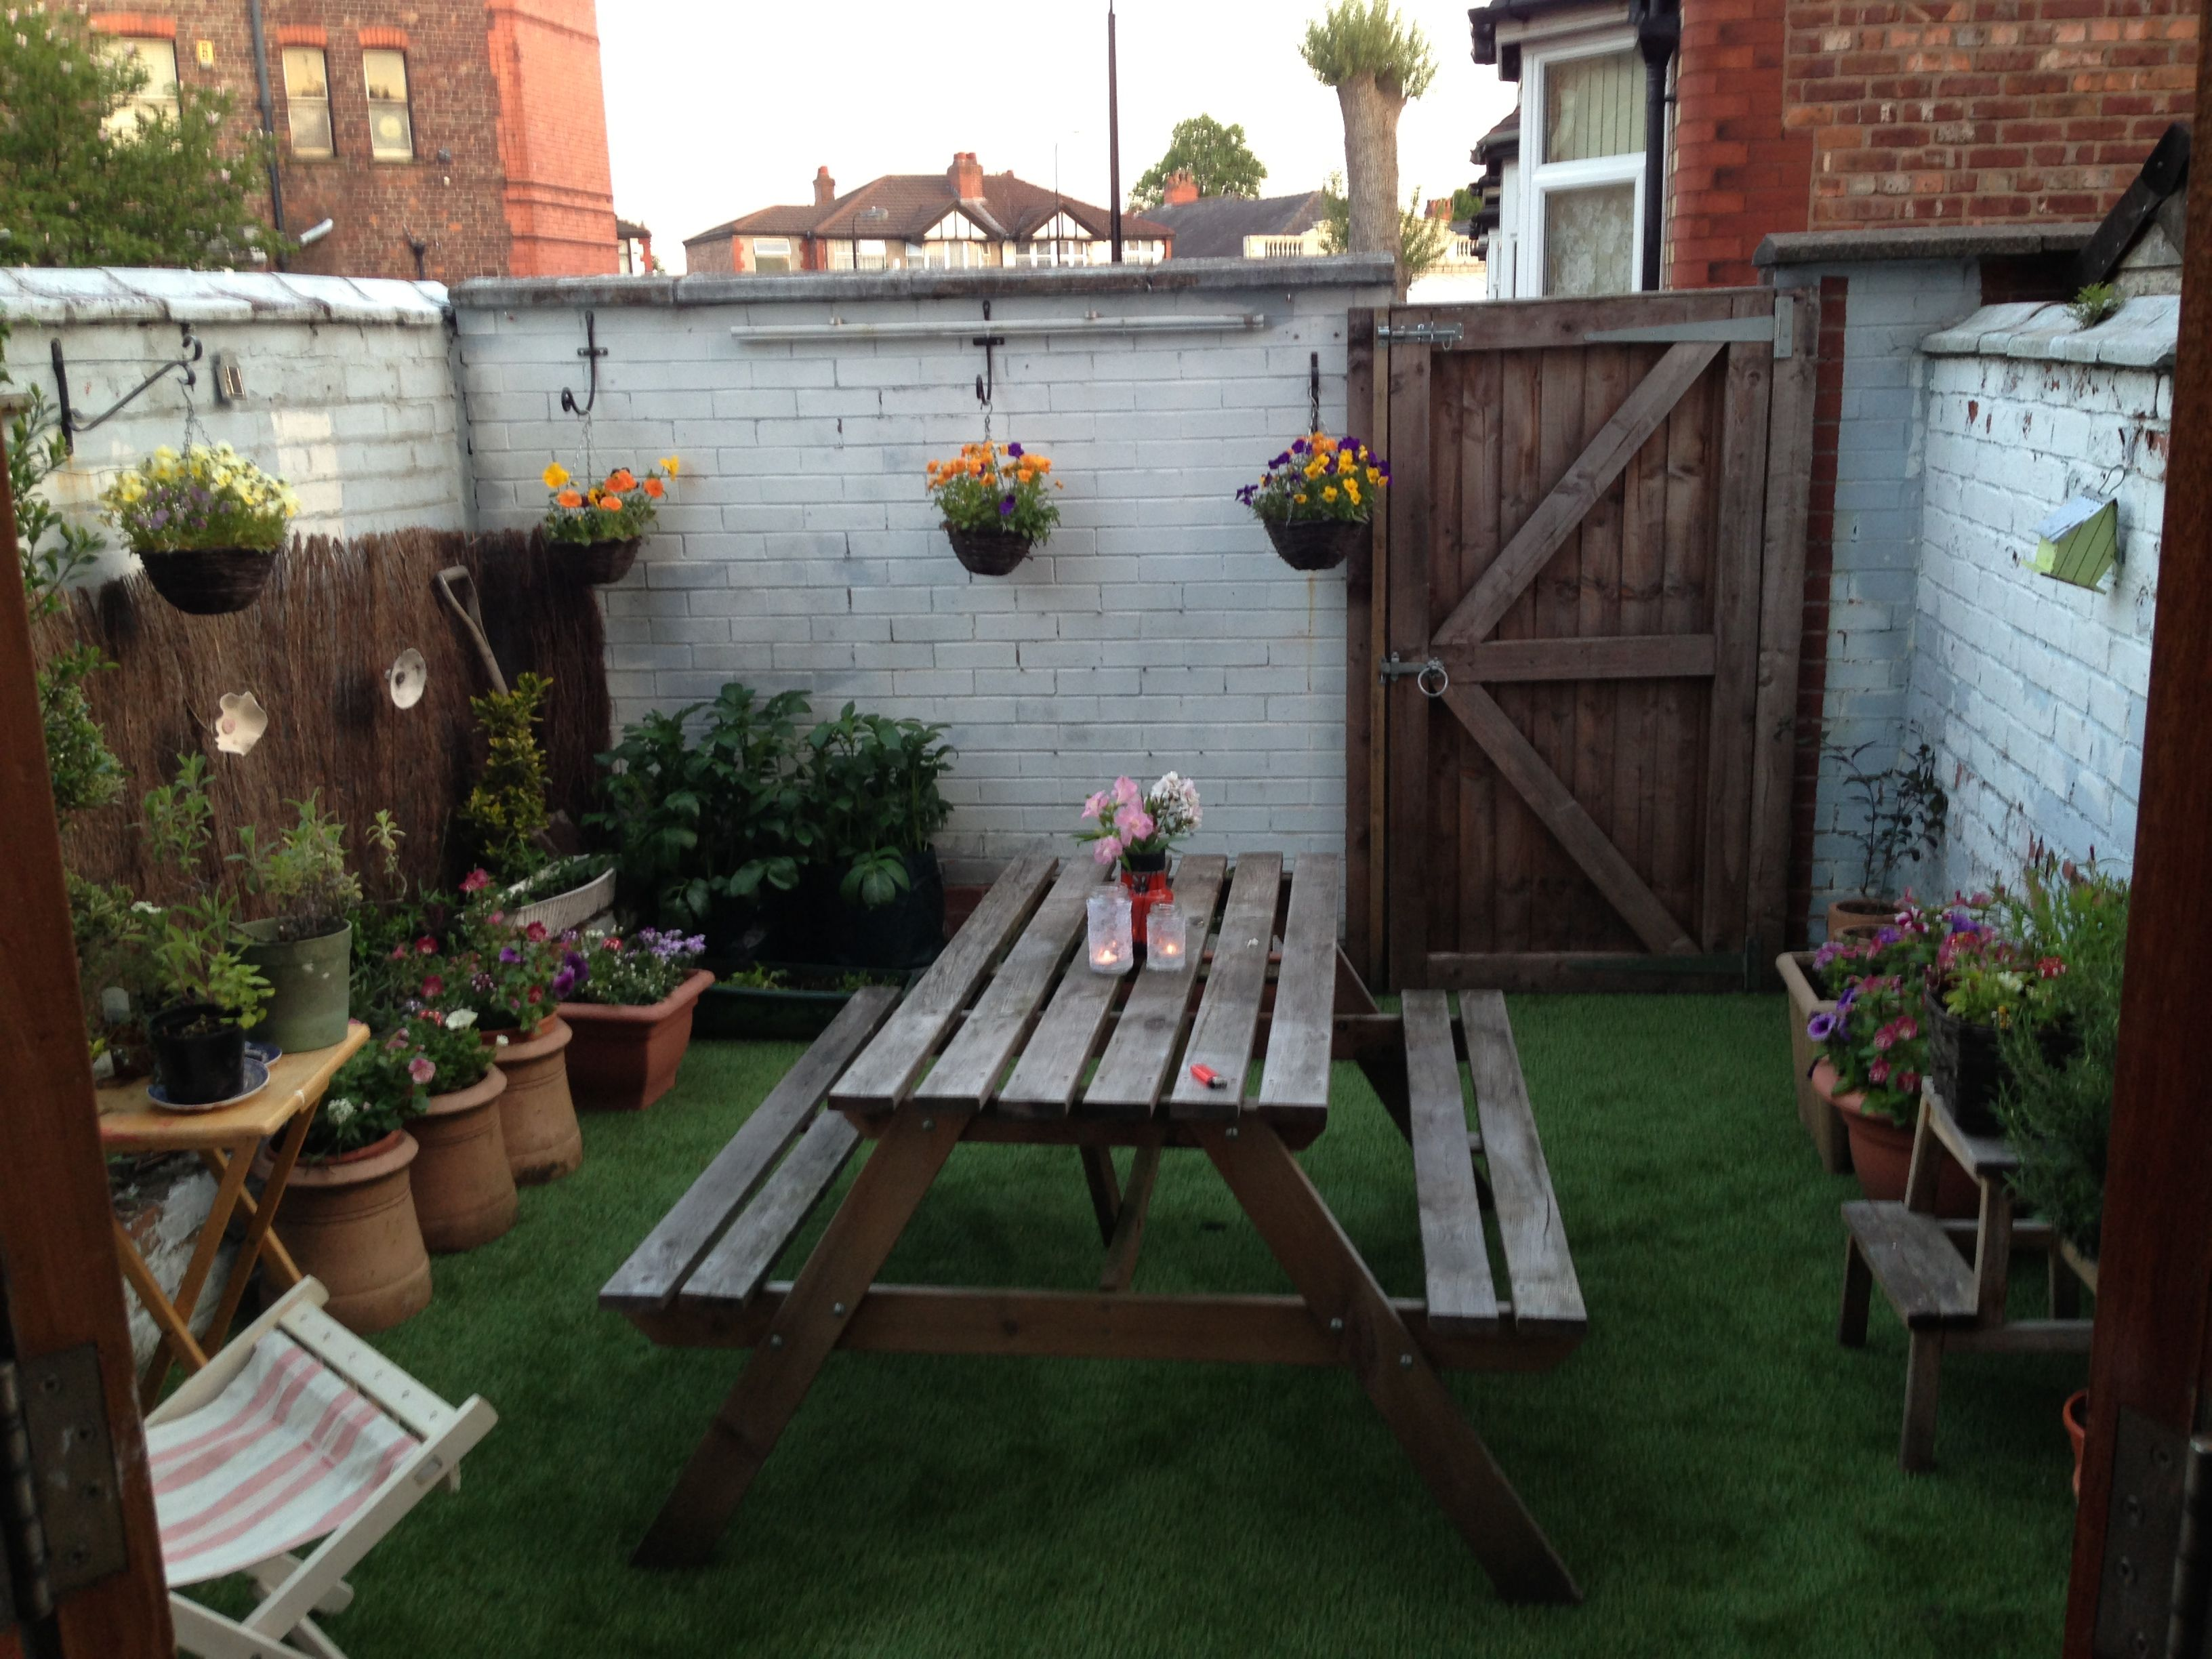 Charmant Garden Complete With AstroTurf! Small Courtyard Gardens, Courtyard Ideas,  Small Courtyards, Patio